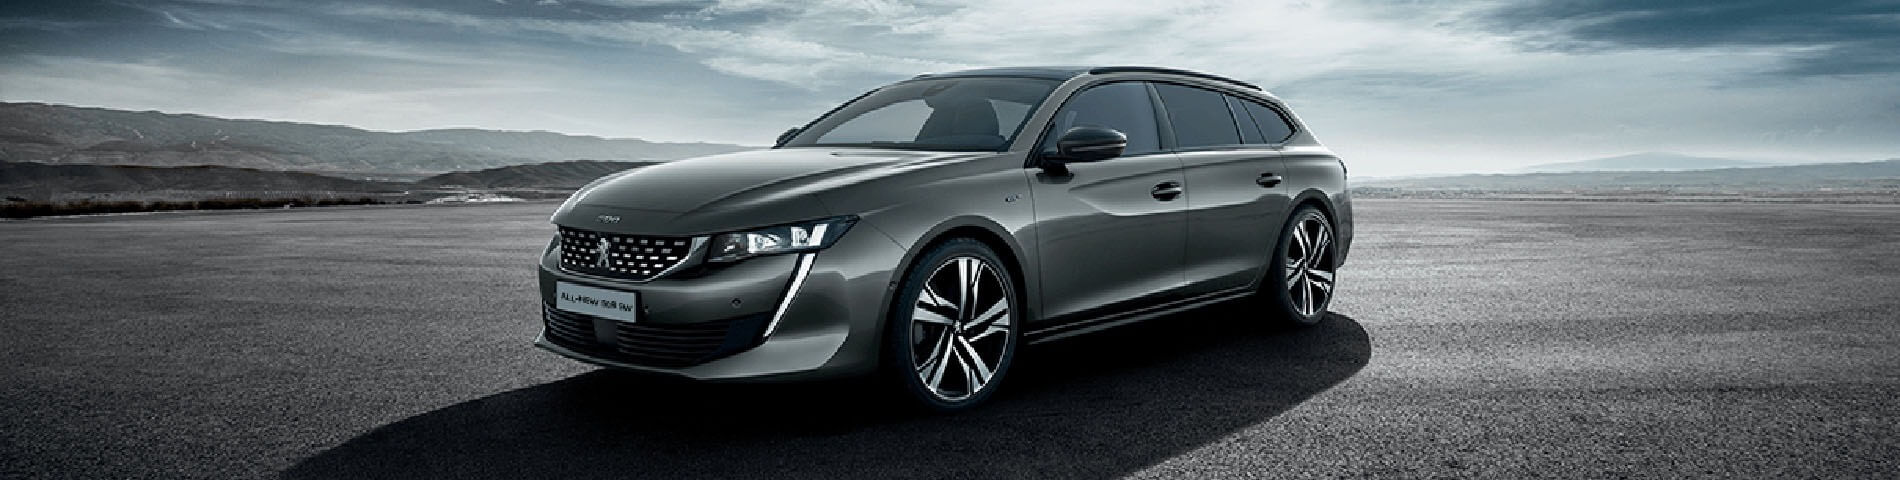 All-New Peugeot 508 SW